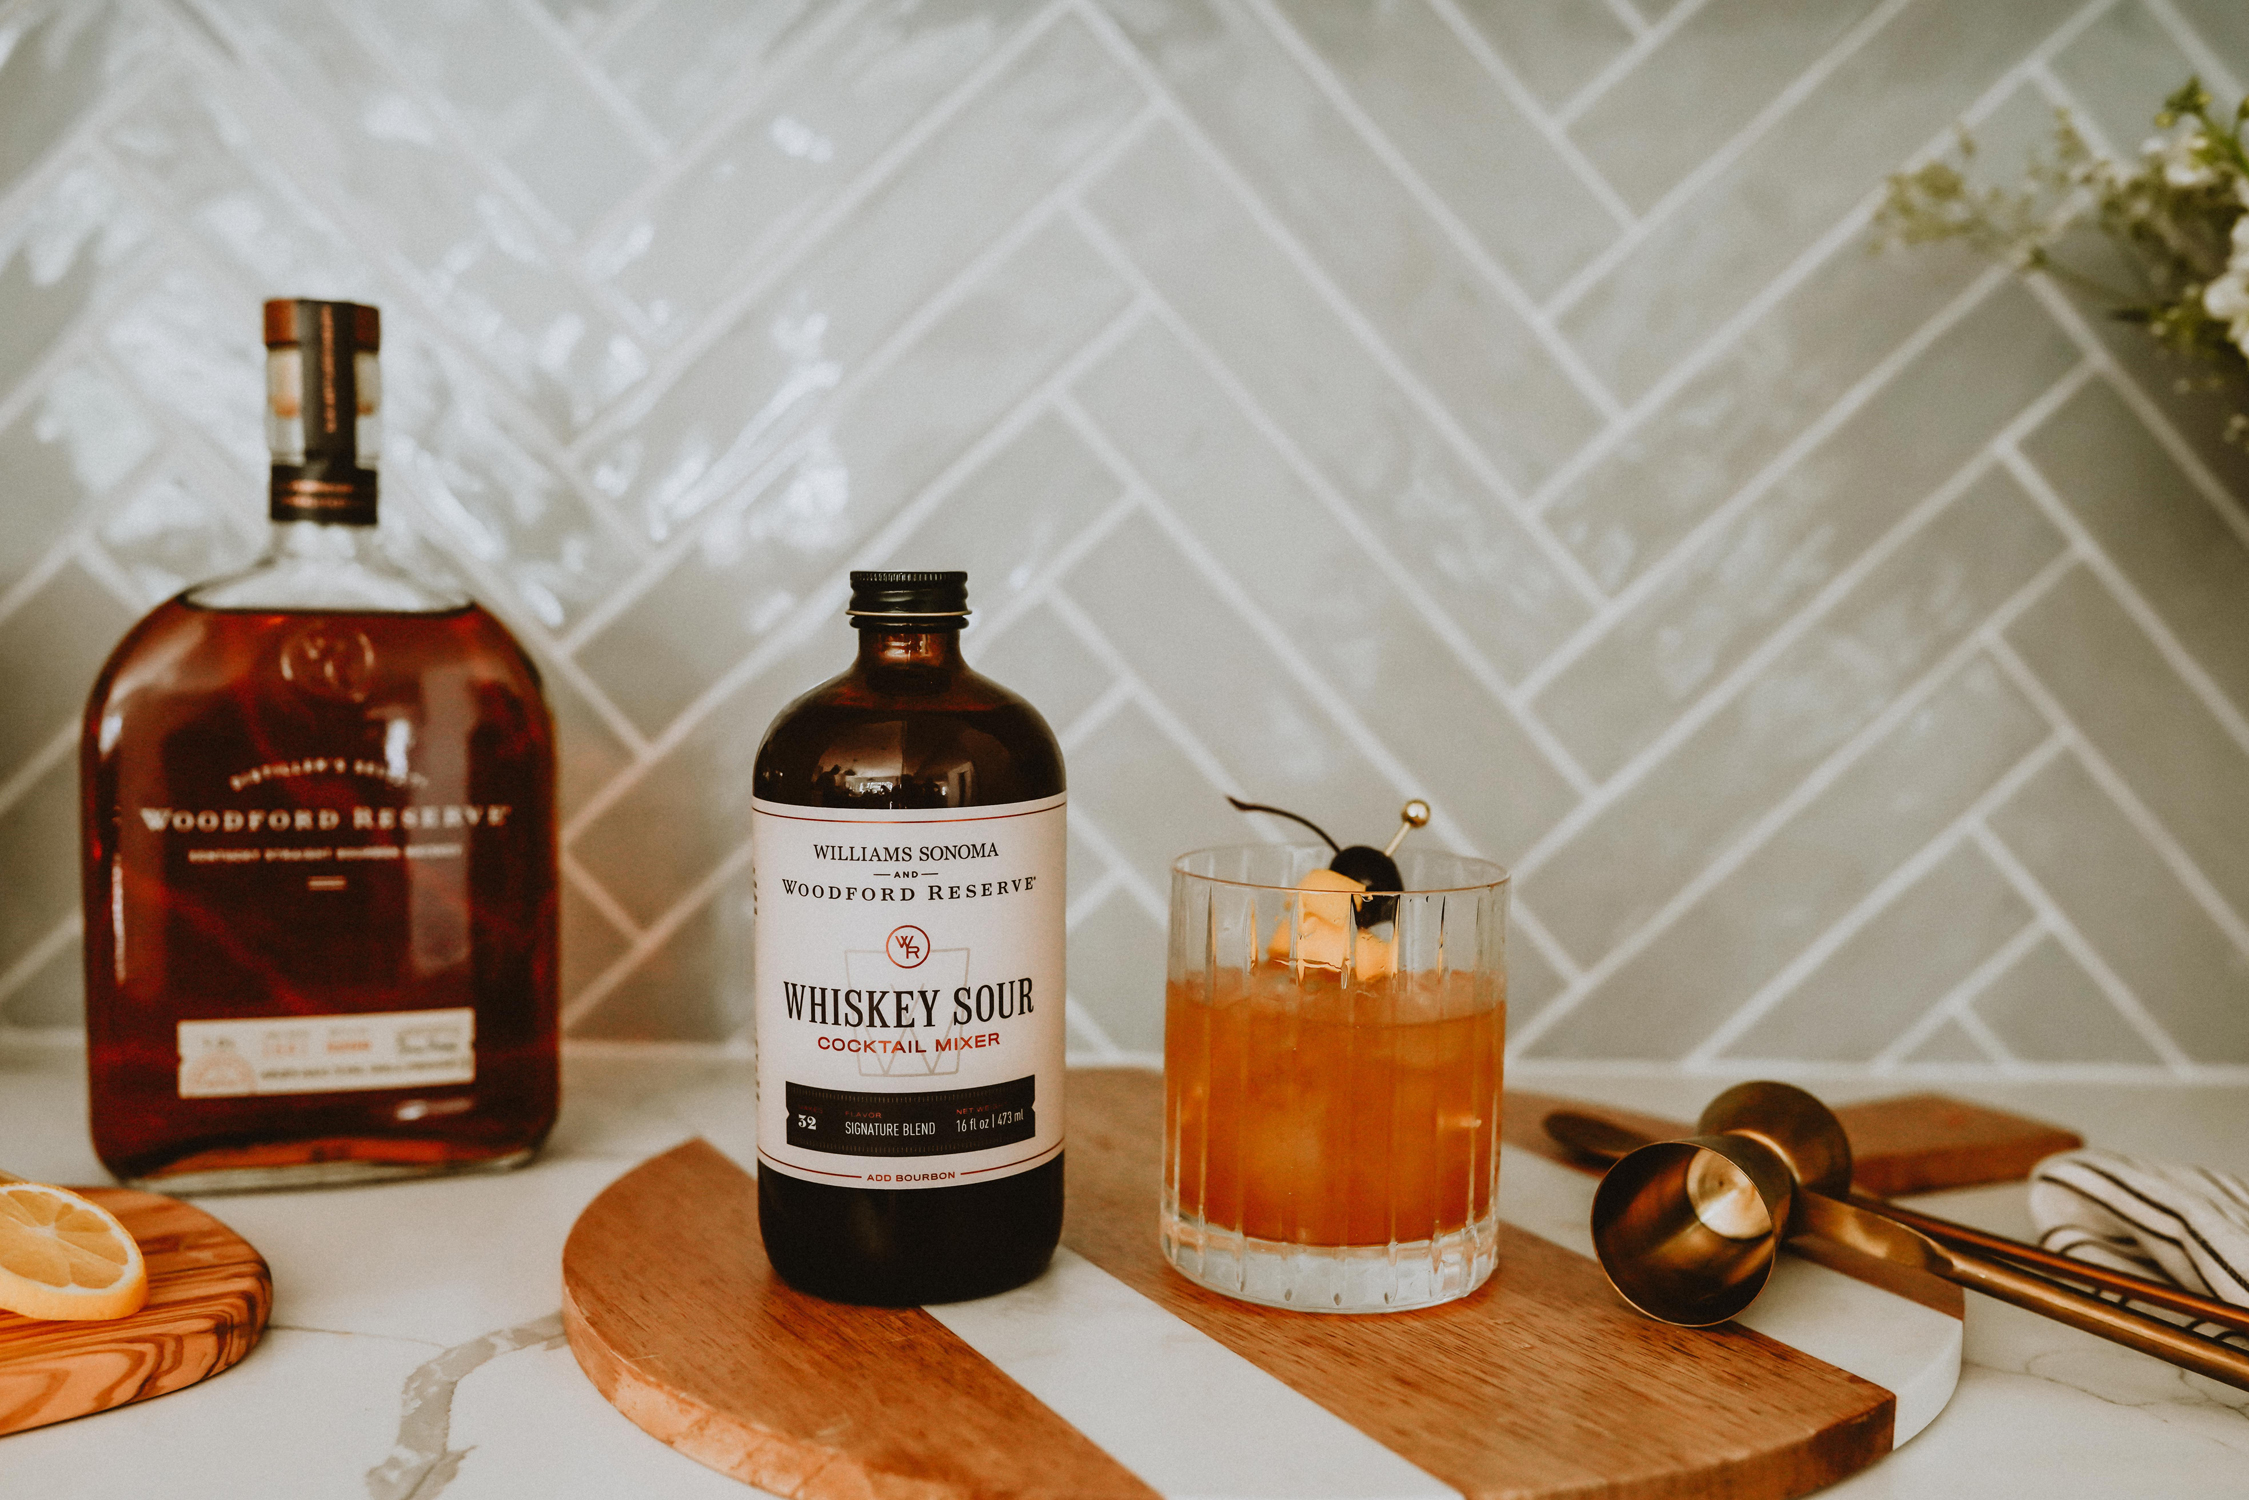 Woodford Reserve's cocktail mixer whisky sour